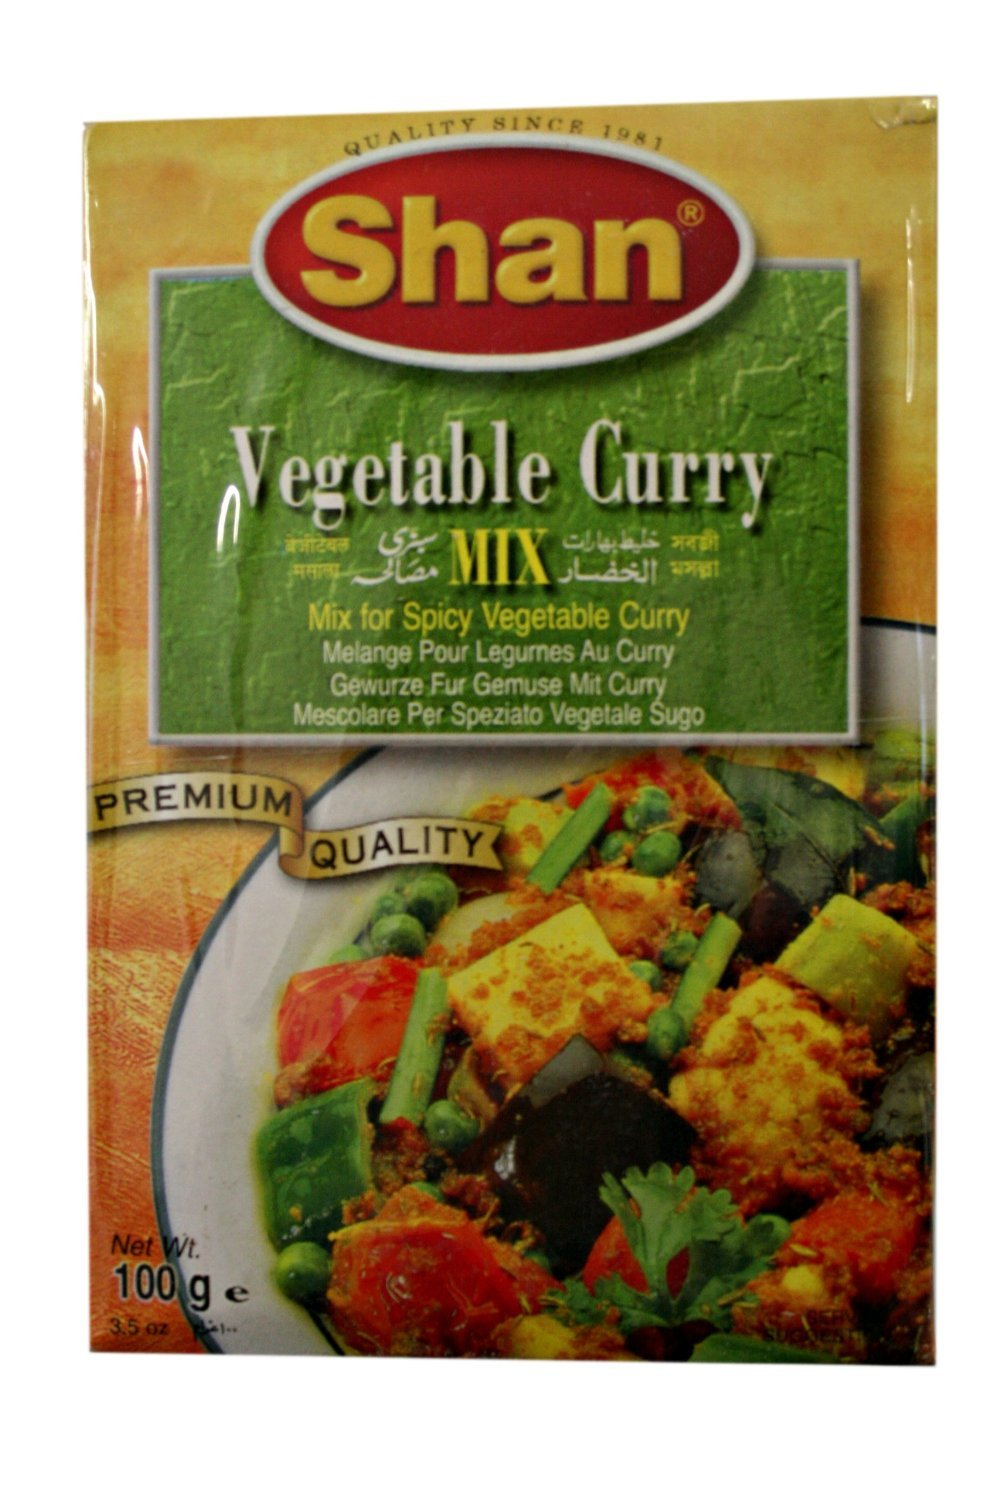 Shan Vegetable Curry Mix (Masala) 100g (Pack of 12)